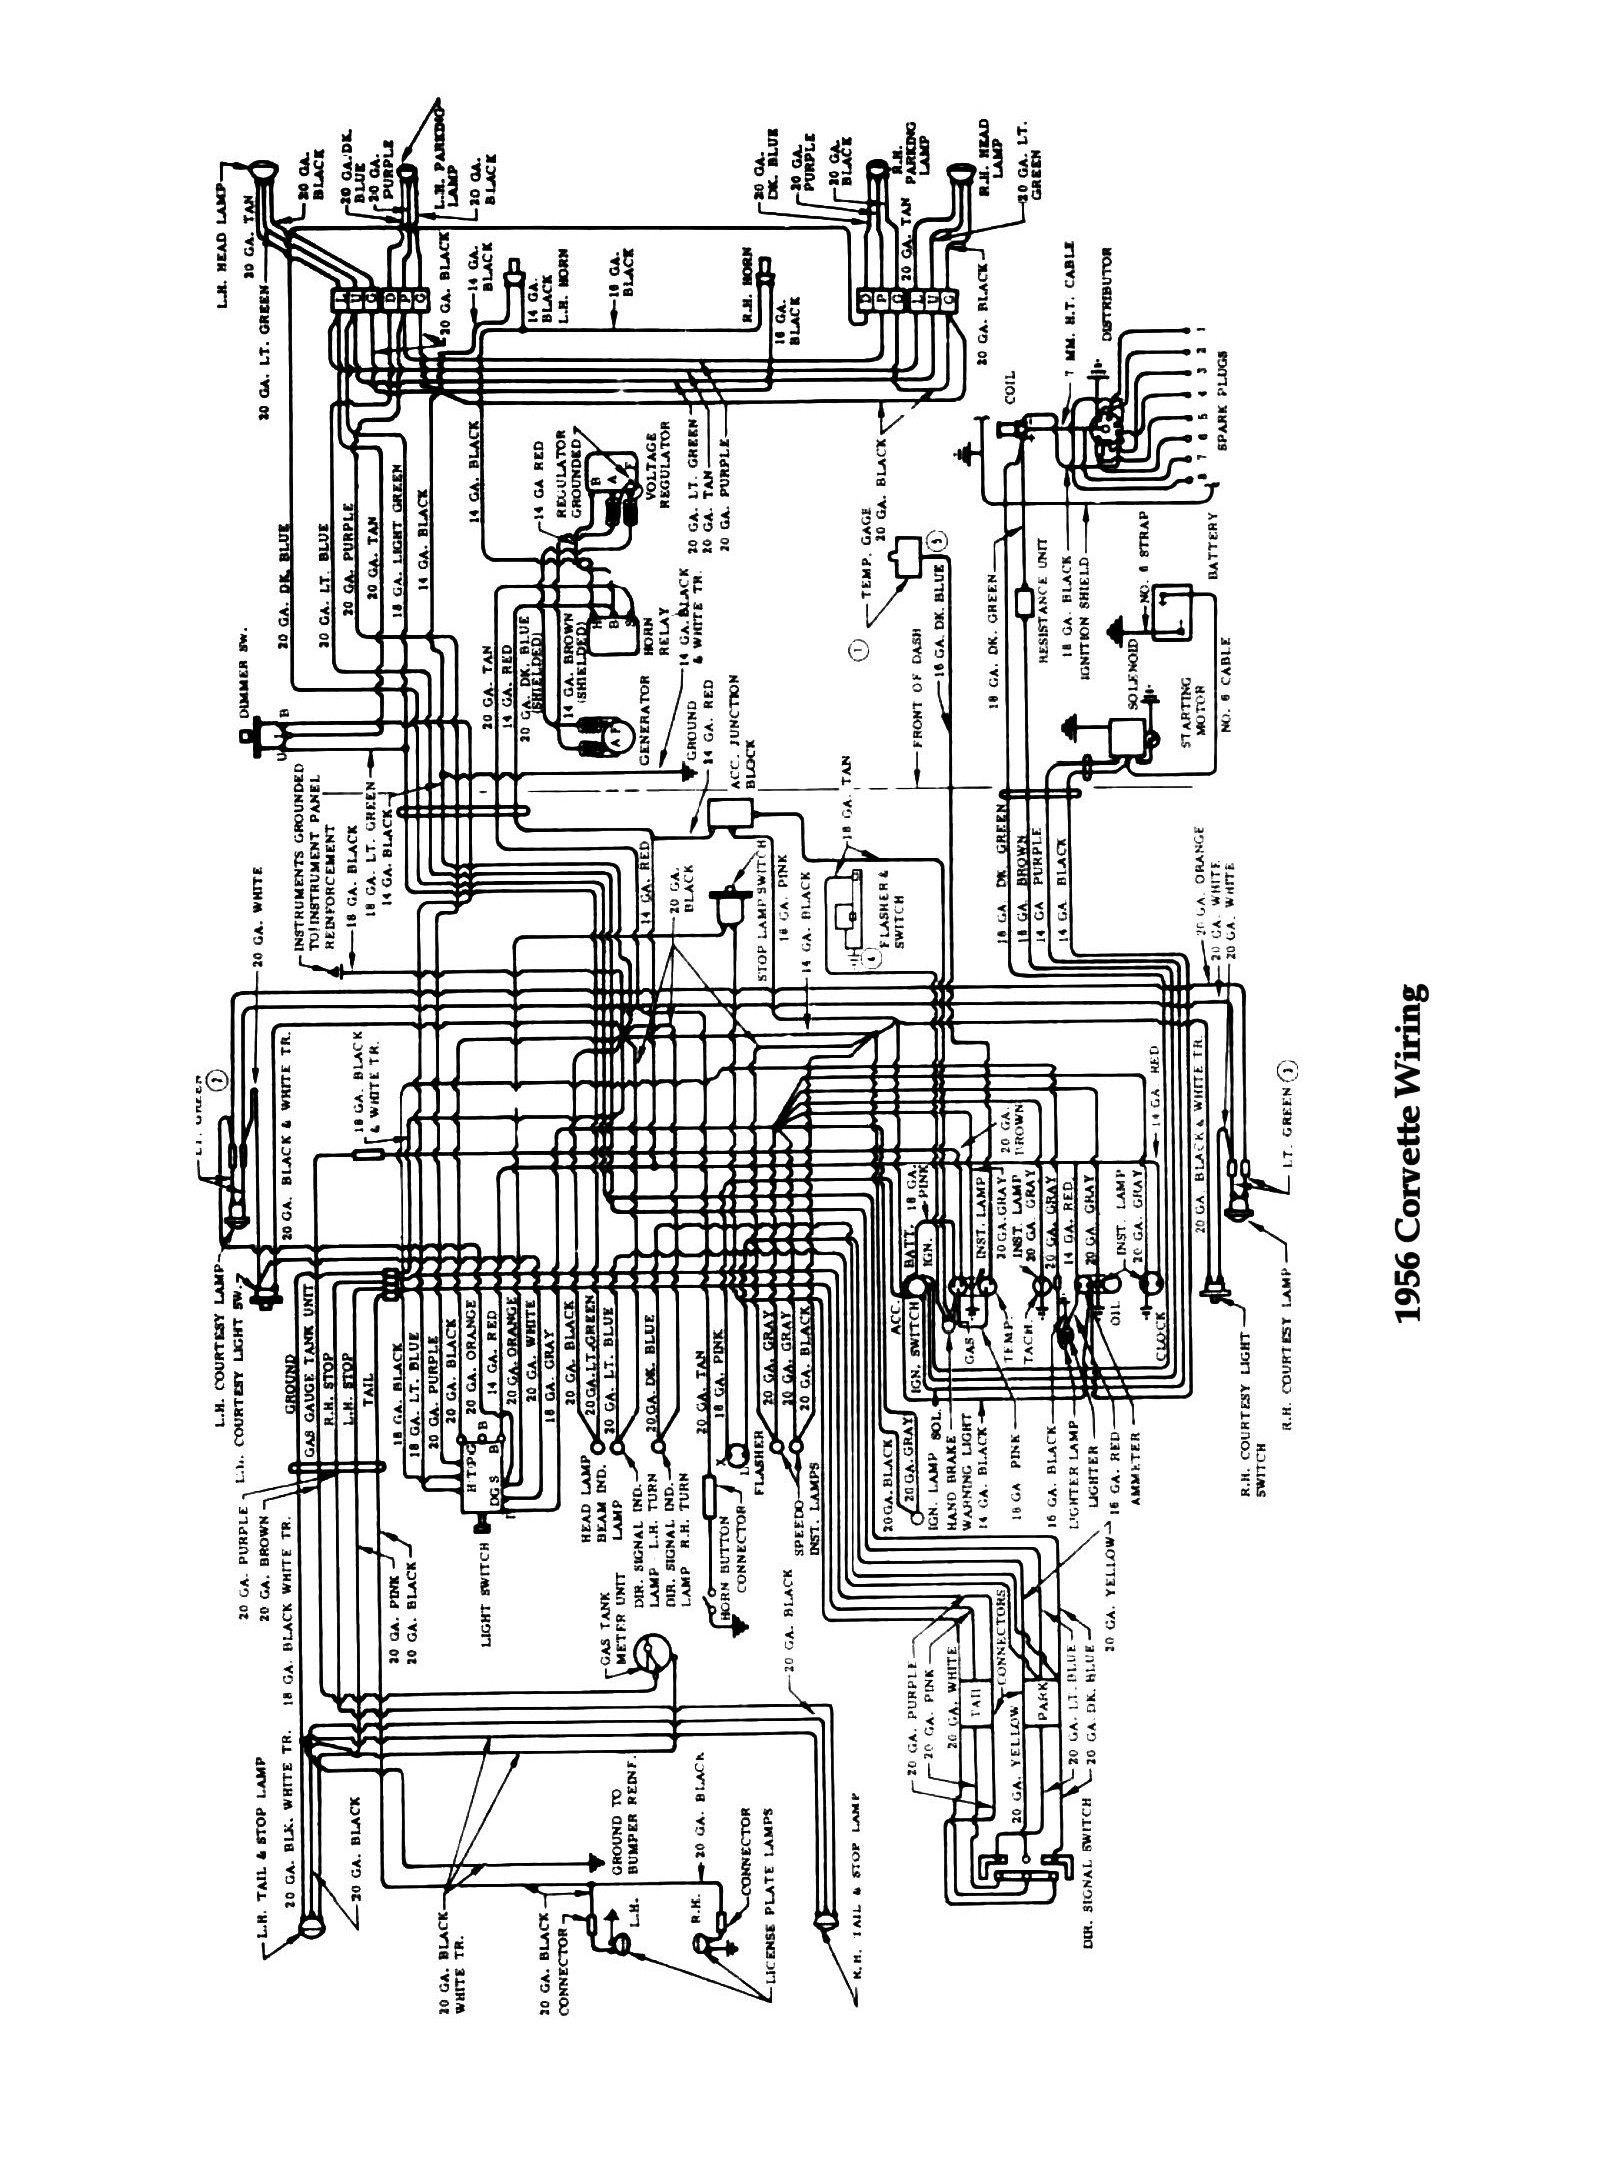 1974 Corvette Wiring Diagram Download Free. Corvette